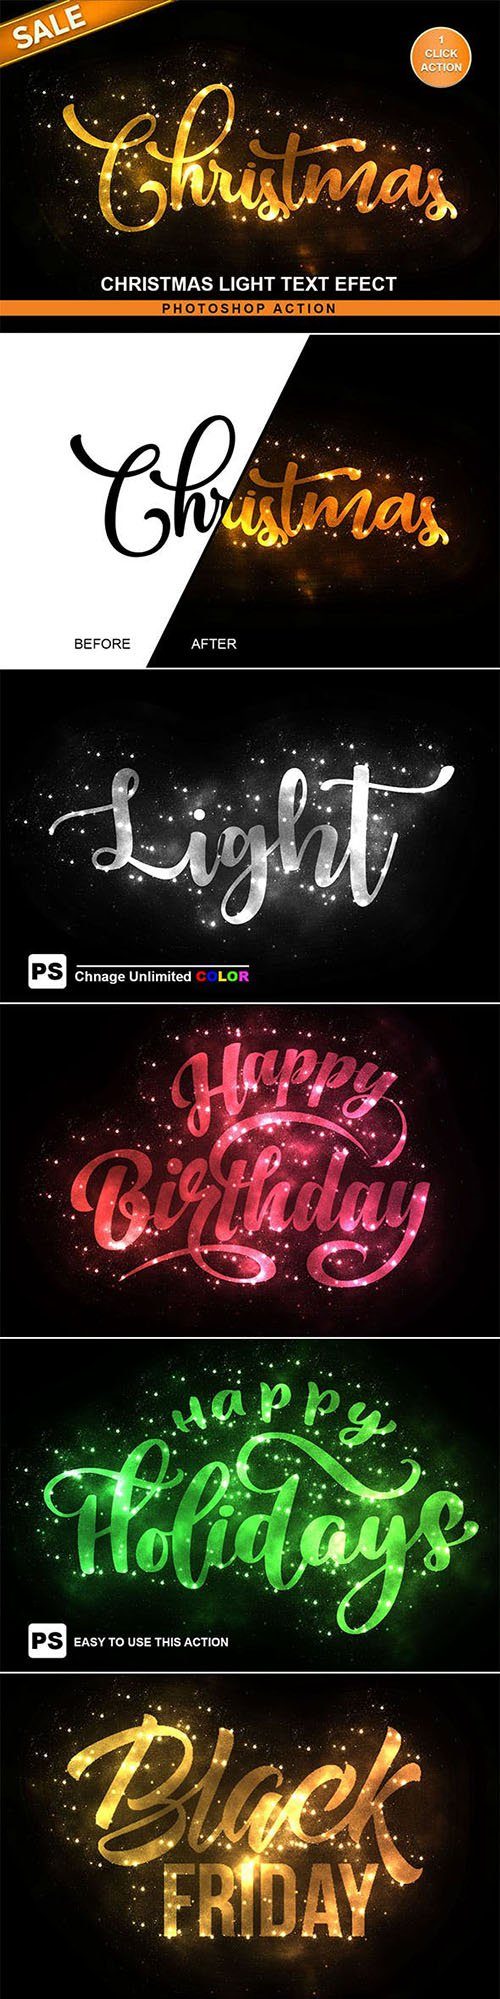 GraphicRiver - Christmas Text Effect Photoshop Action 22681467